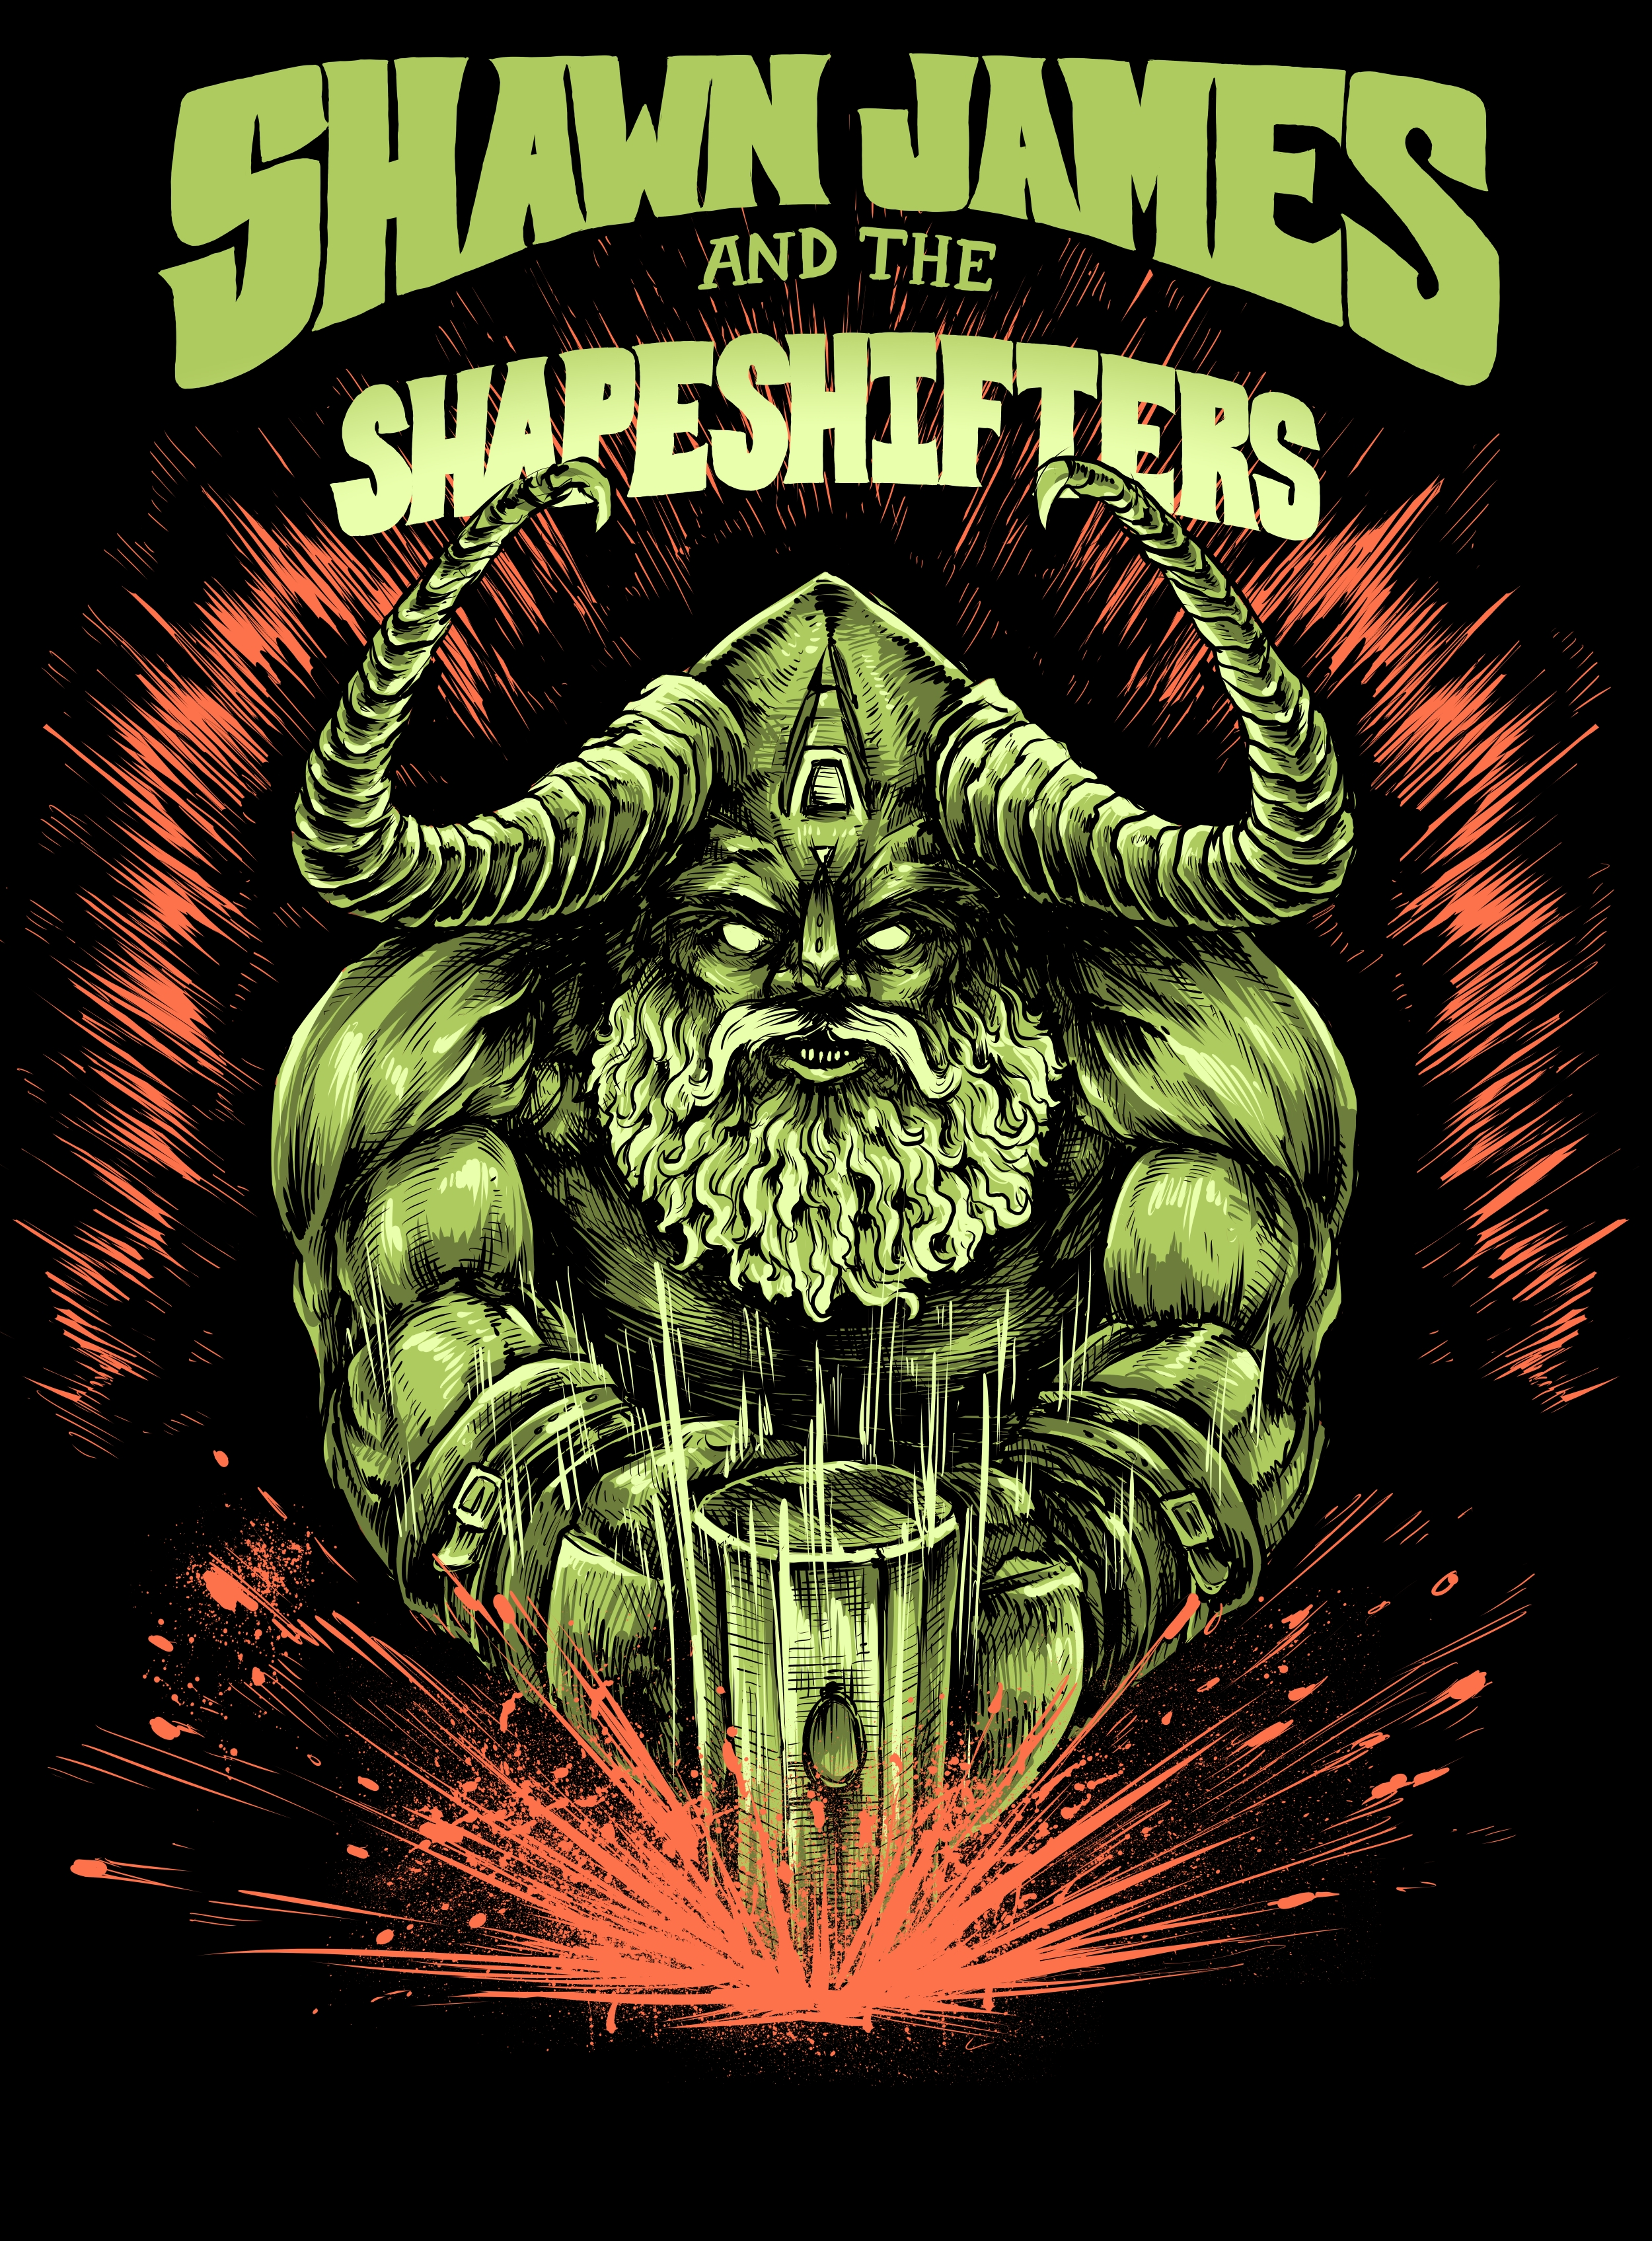 Shawn James and the Shapeshifters Tour 2017